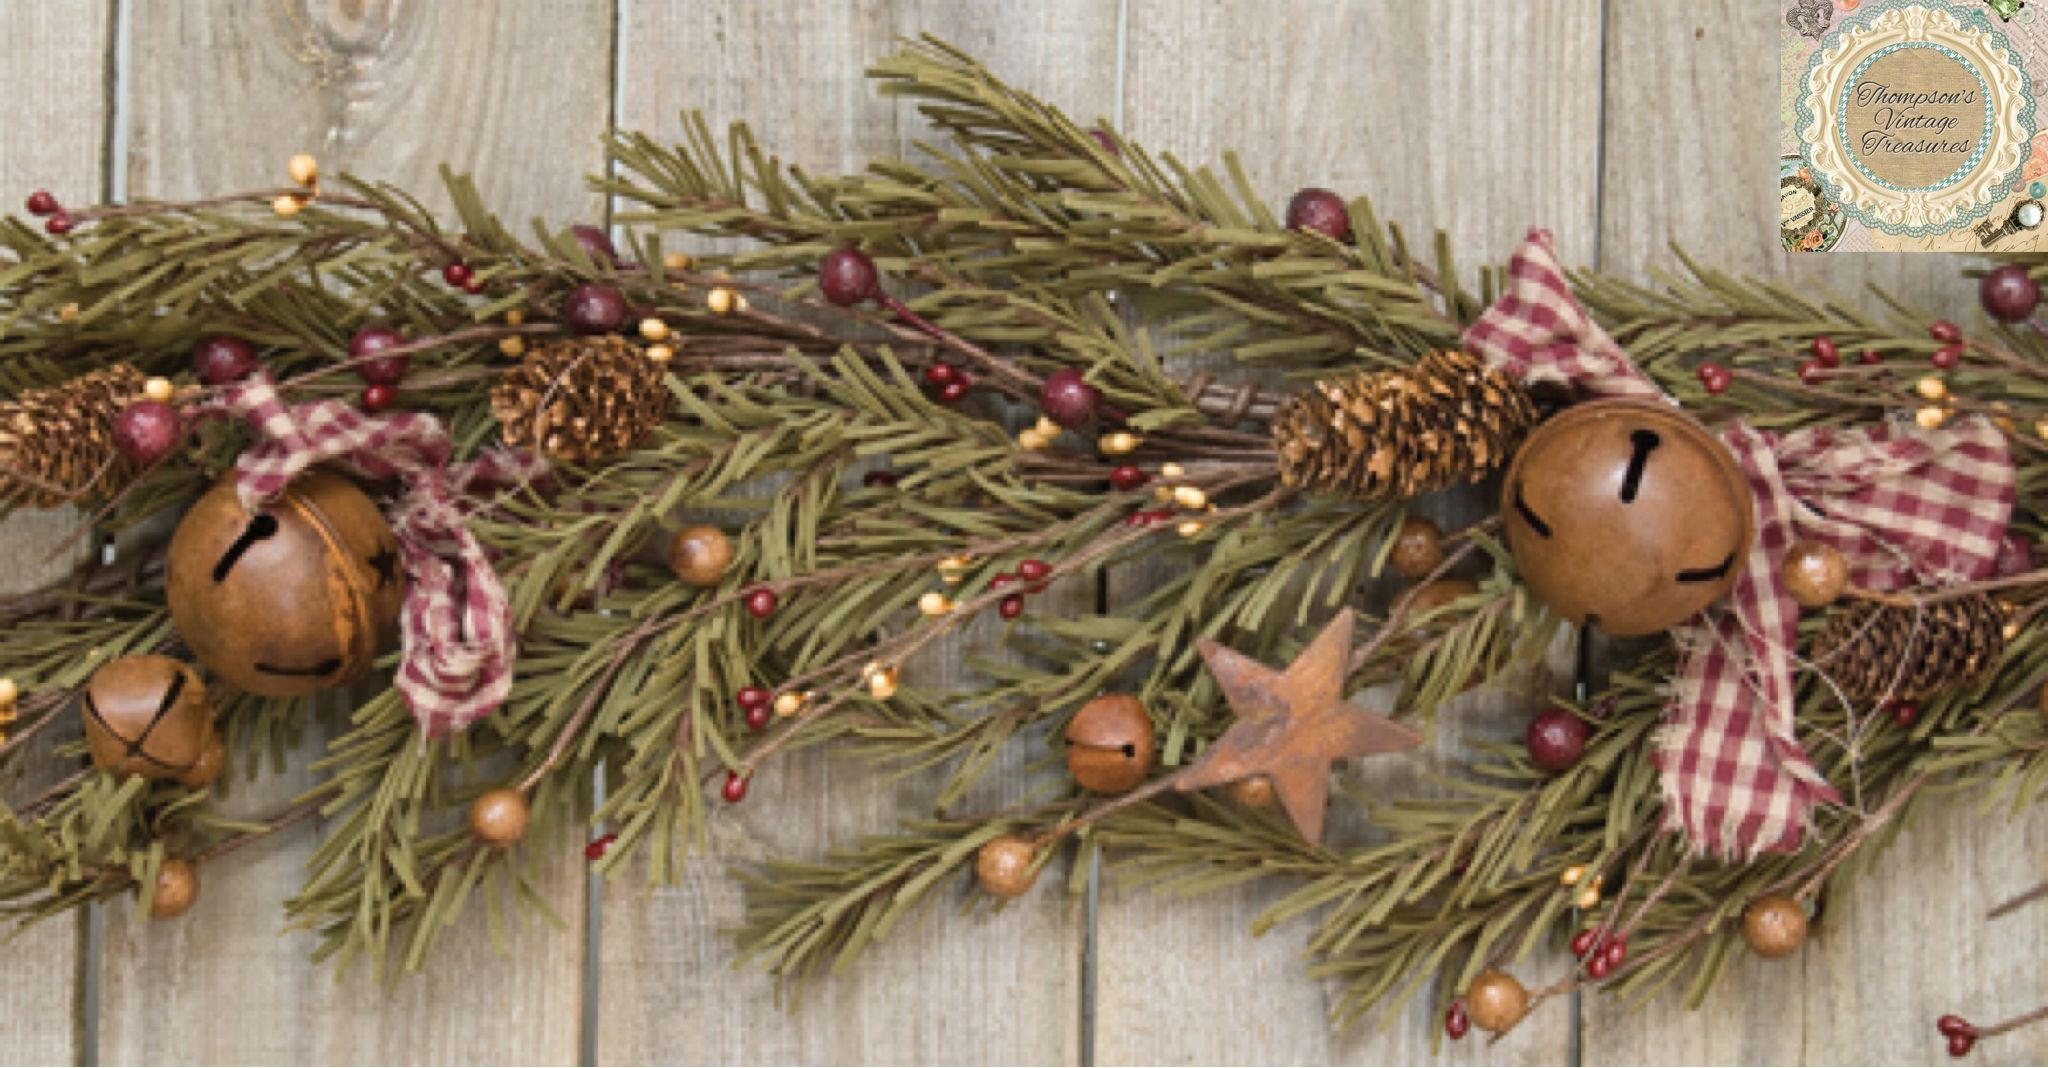 Our Rustic Holiday Pine Garland Is The Perfect Accent For Mantels Tablescapes And More T Country Christmas Decorations Christmas Garland Primitive Christmas